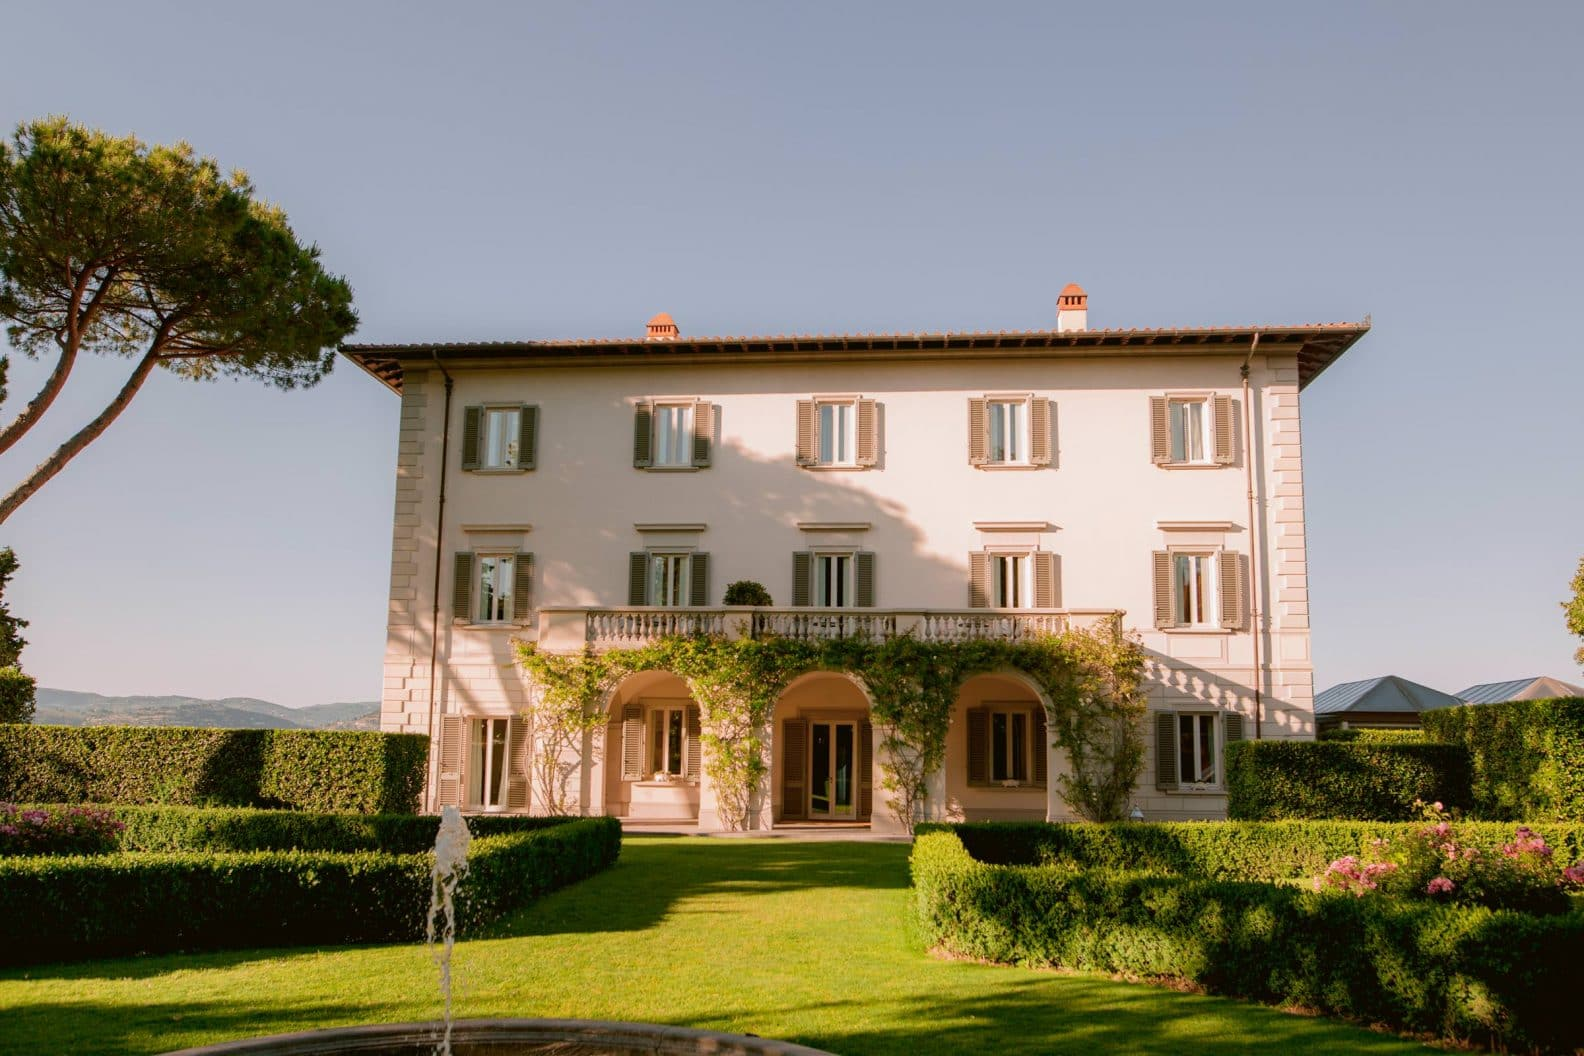 villa la vedetta is one of the best wedding venue in Tuscany